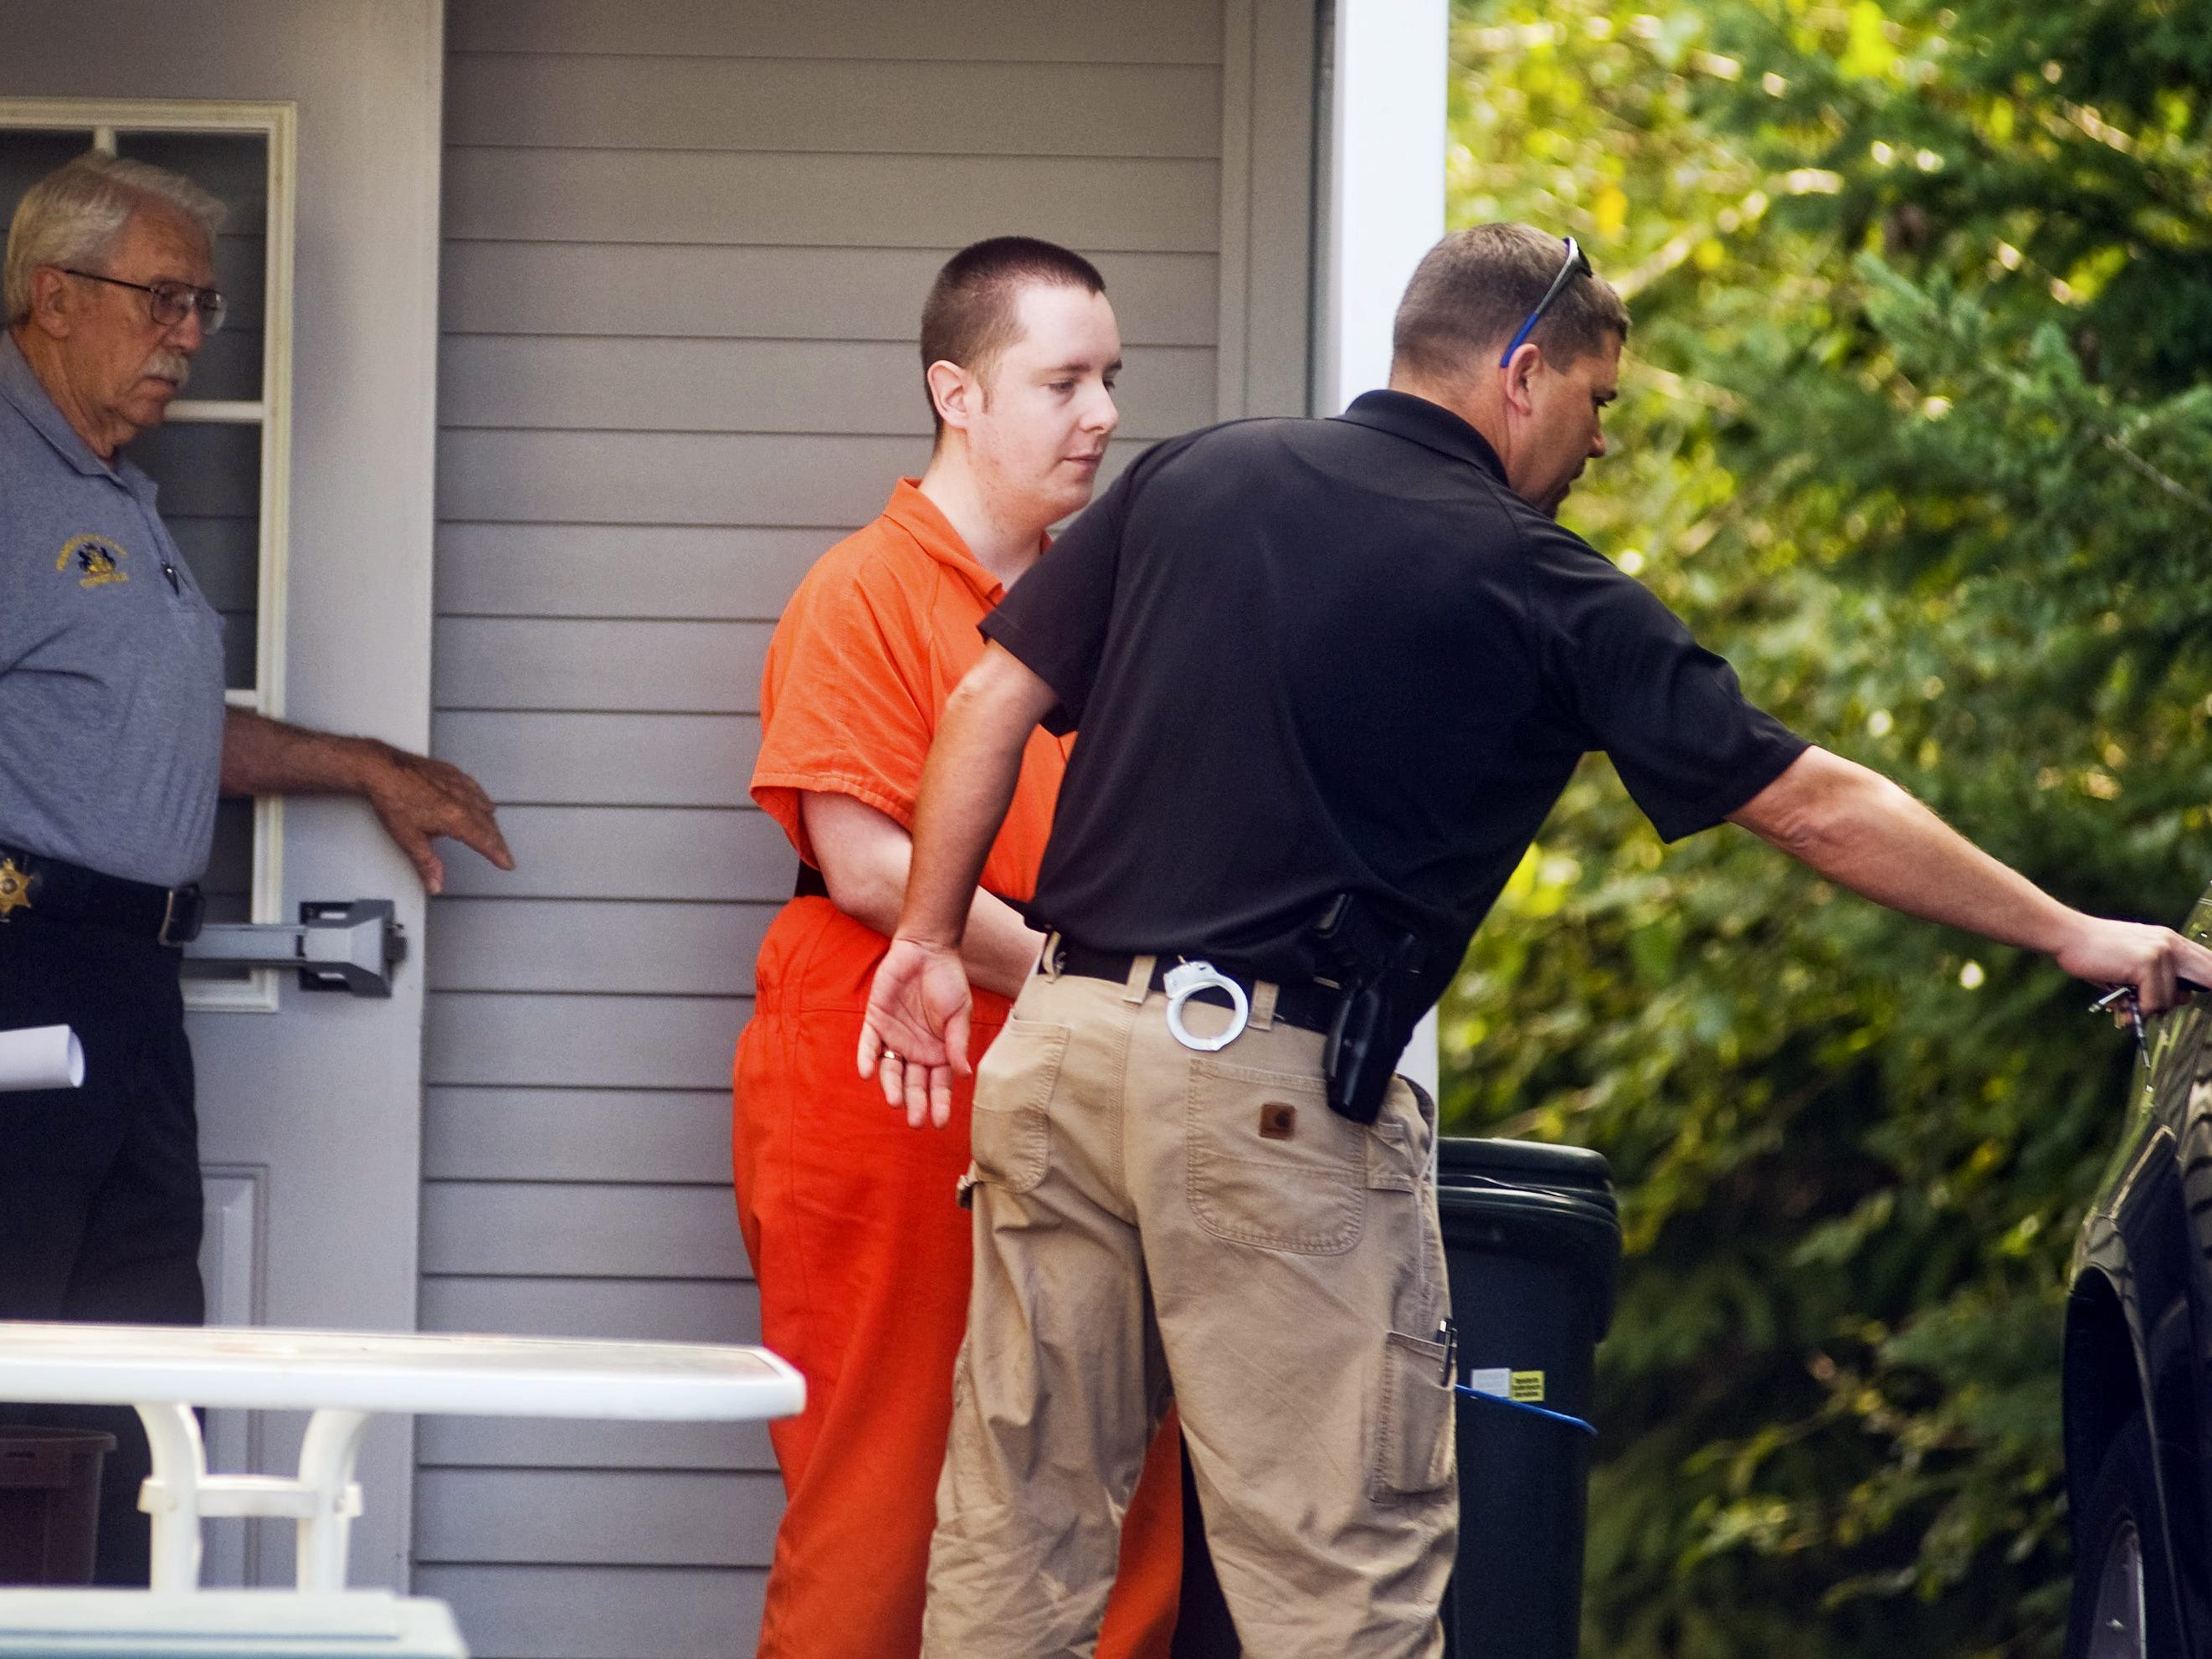 Scott Anthony Schaffer is escorted to a waiting vehicle after Tuesday's hearing at the office of Judge Dwayne Dubs on September 3, 2013.